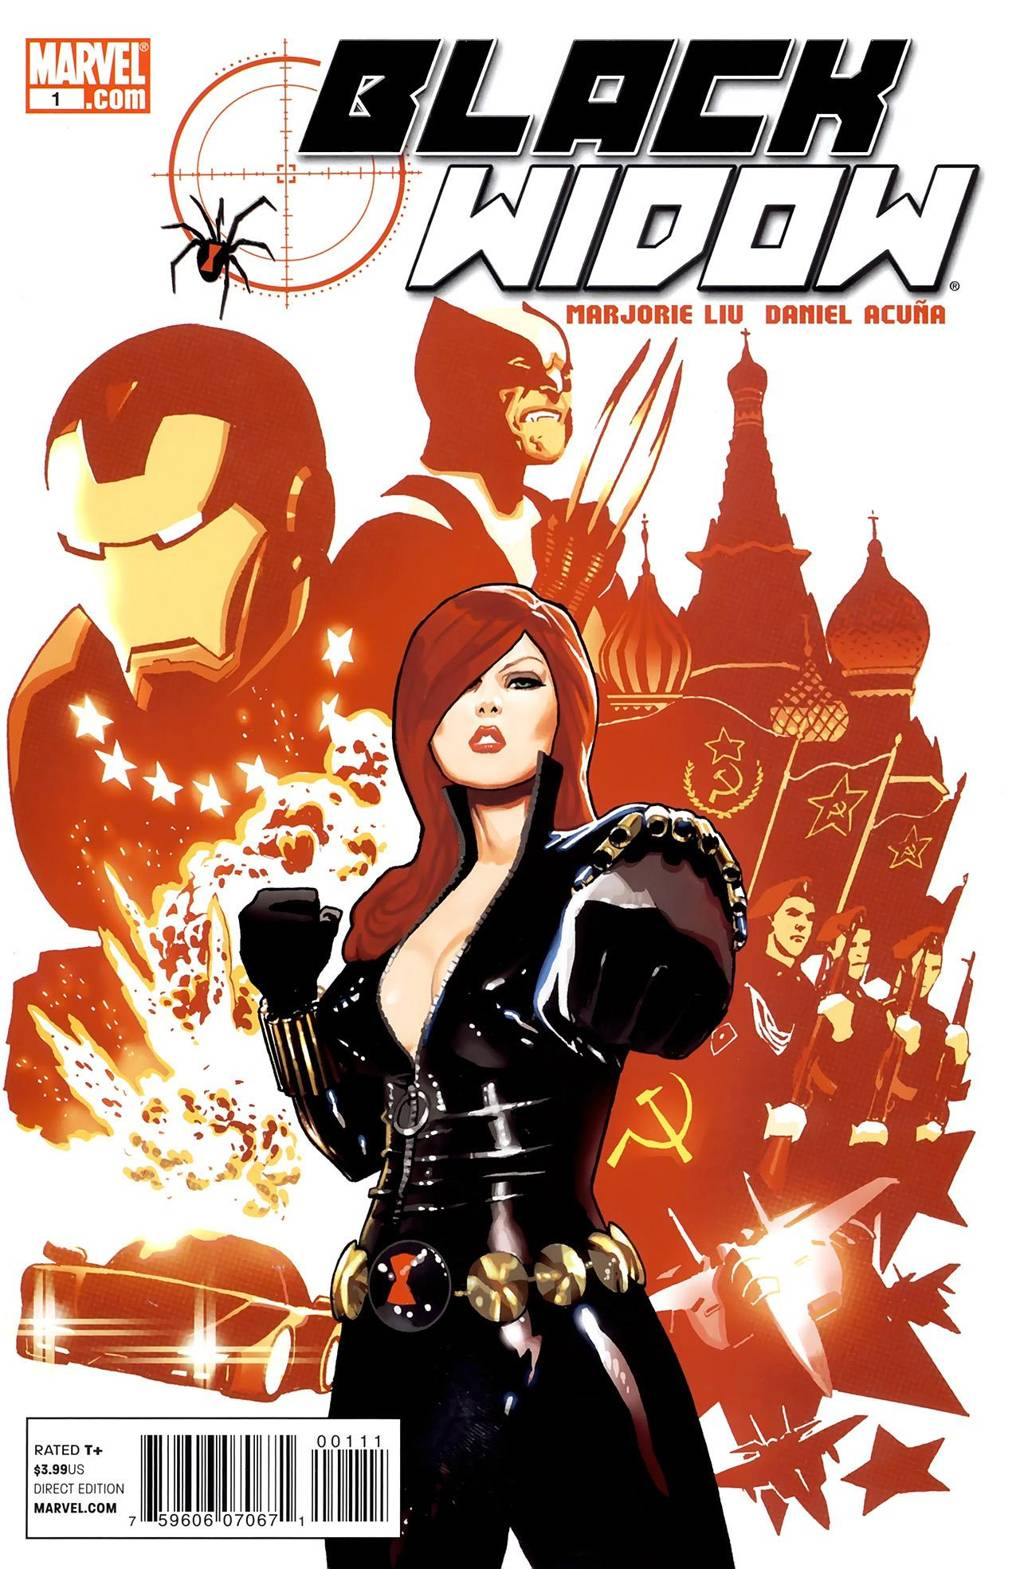 What to expect from Marvel's Avengers spin-off 'Black Widow